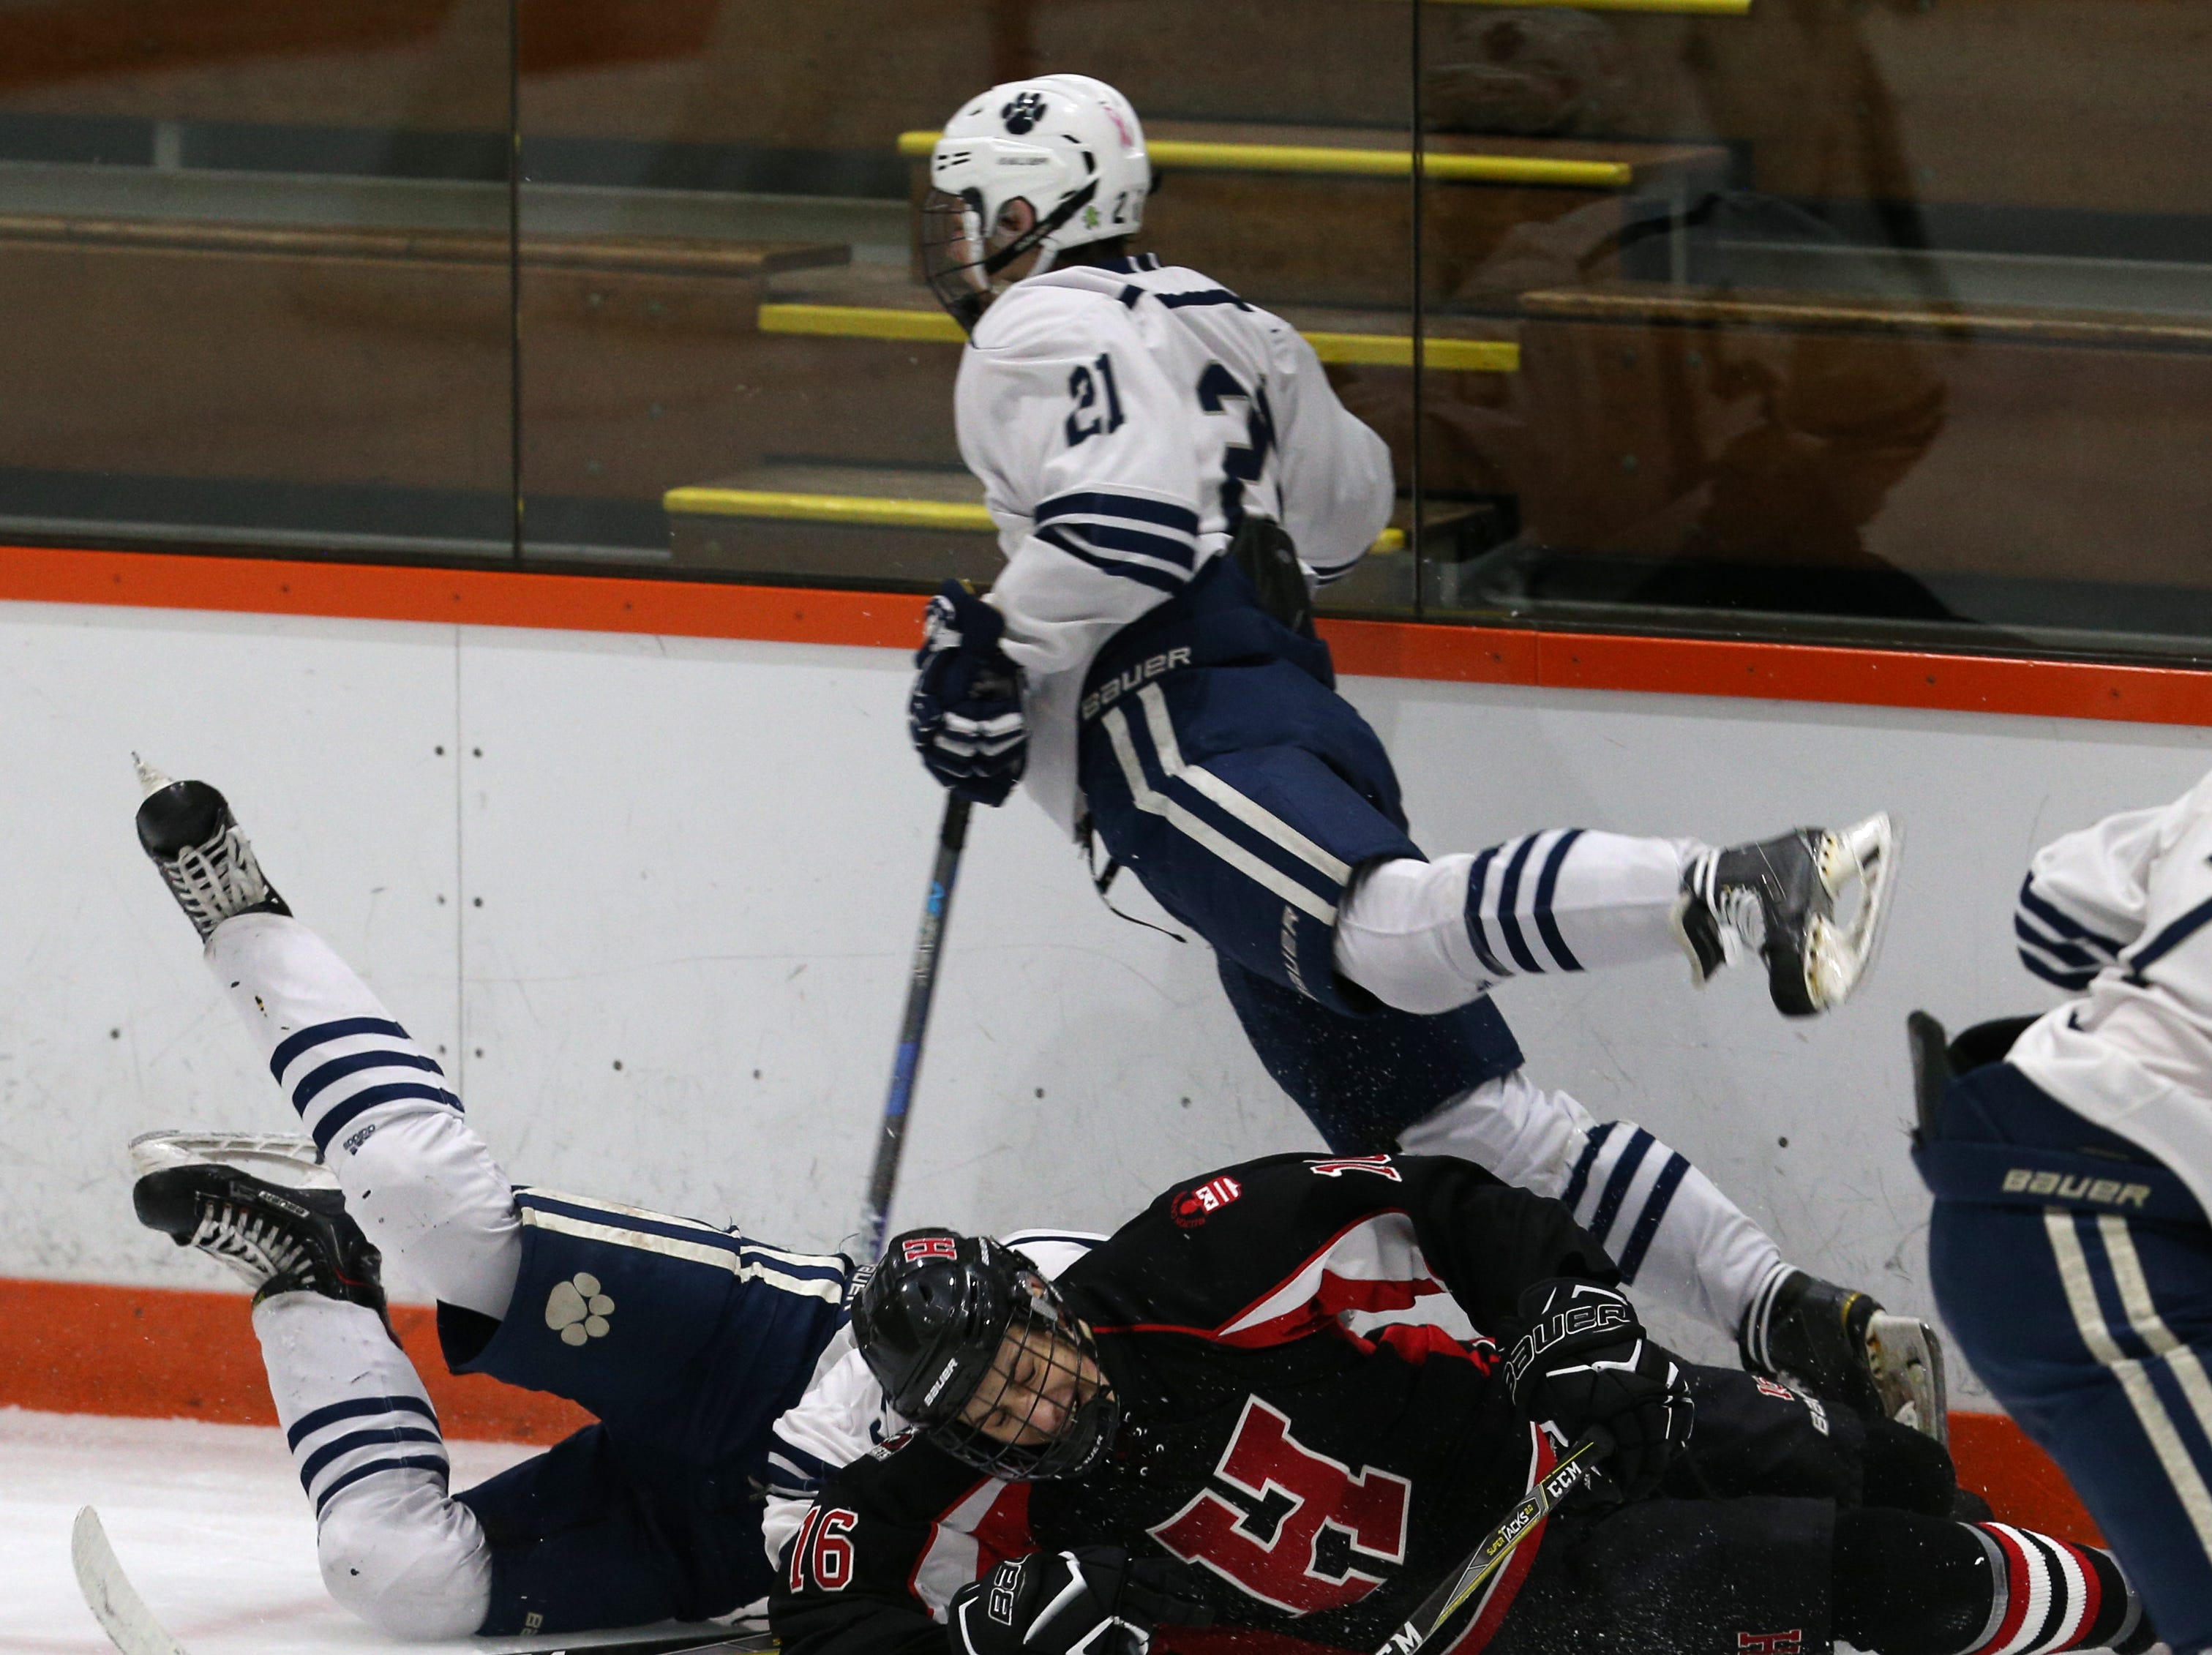 Hilton's Zach Fichtner (16) is taken out by Pittsford along the boards.